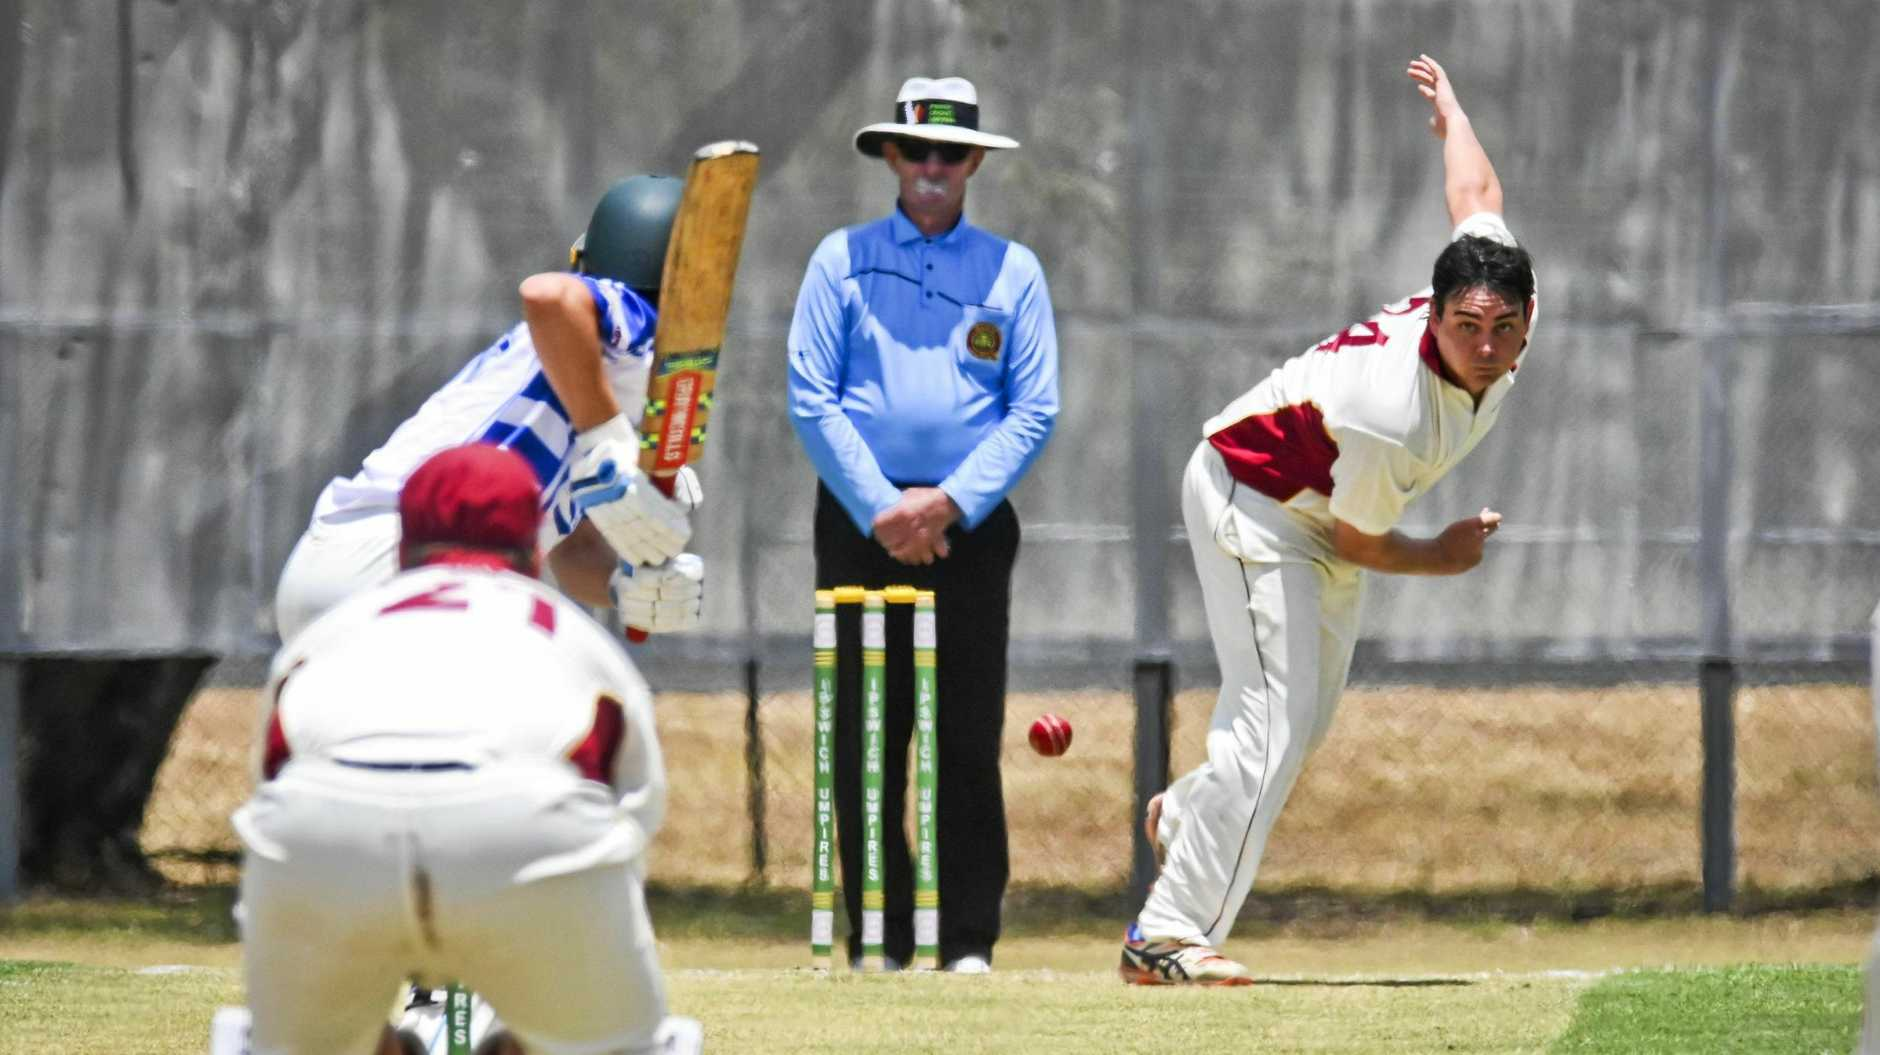 TIGHT TUSSLE: Centrals bowler Rhys O'Sullivan delivers an accurate line to the Brothers batsman during an earlier first division clash this season.